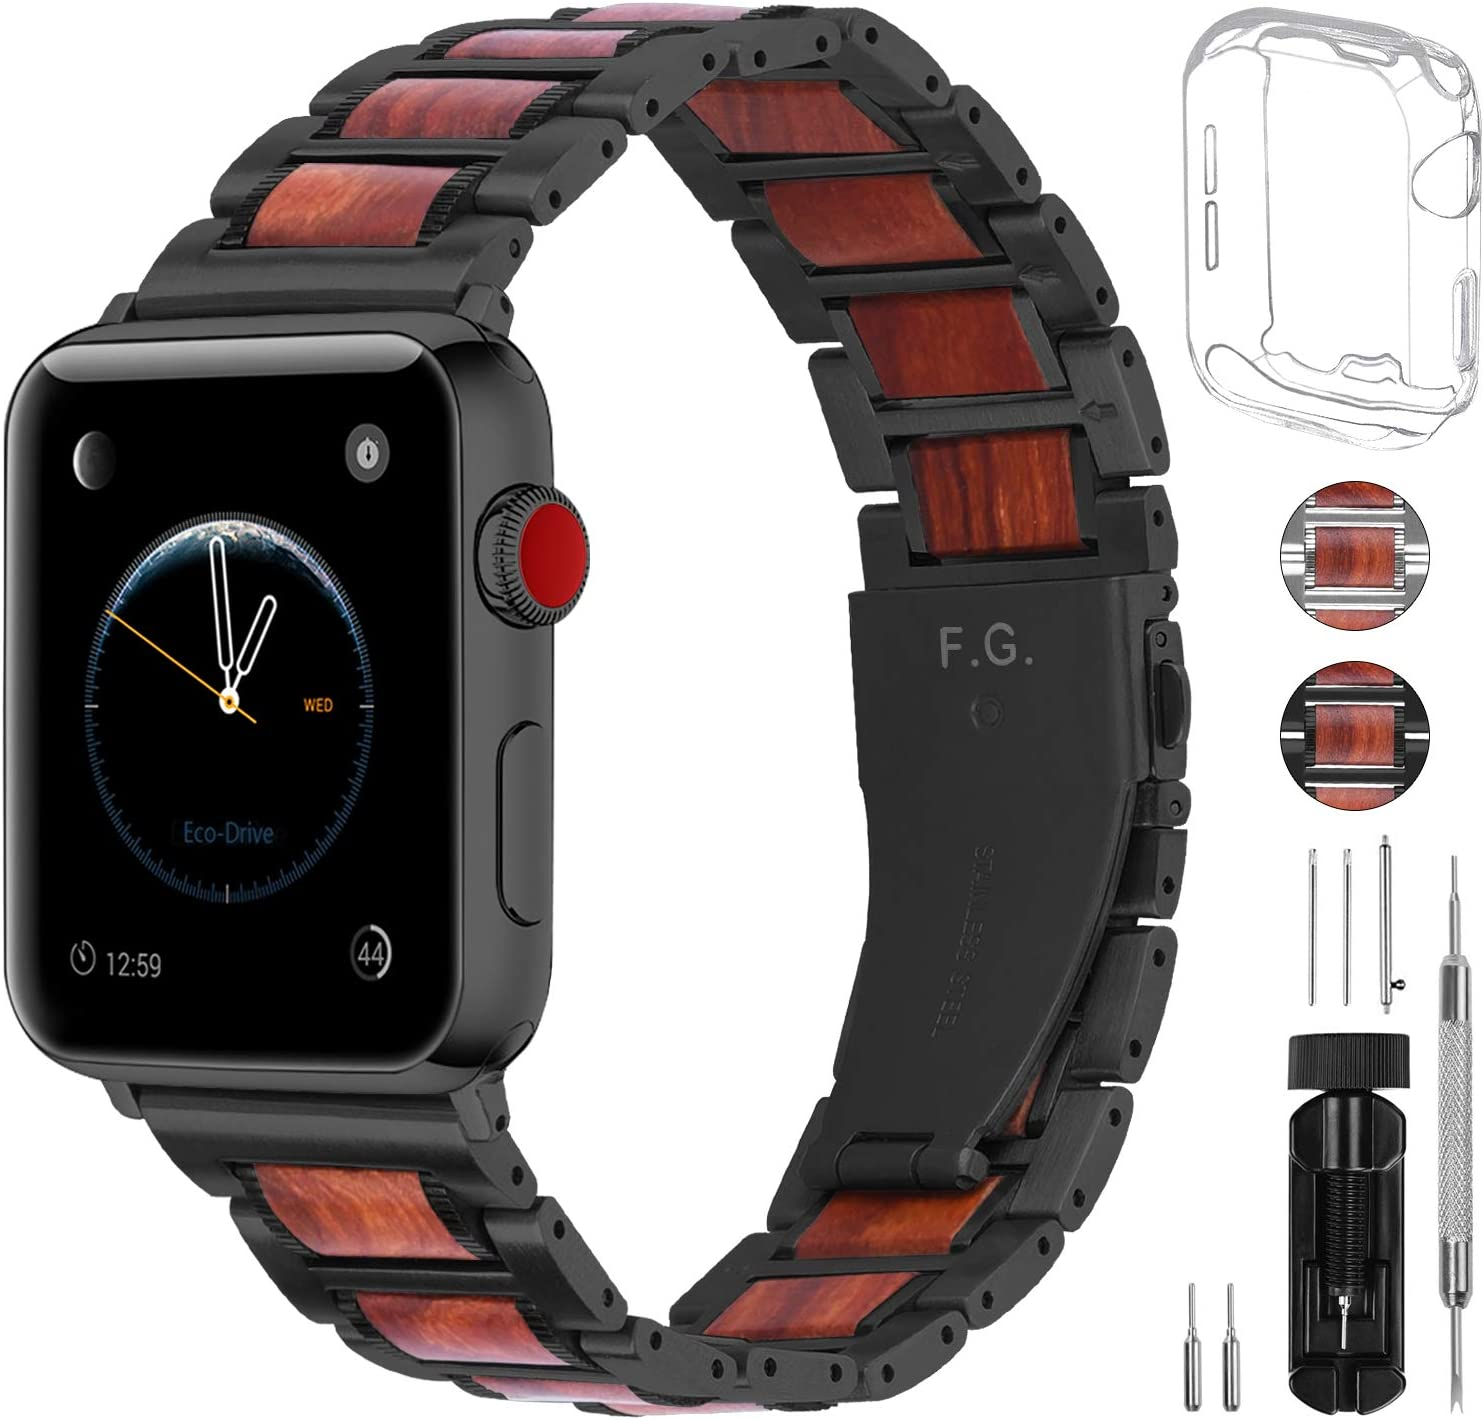 Fullmosa Apple Watch Band 44mm 42mm 40mm 38mm,2 Colors Sandal Wooden Metal Strap Compatible with iWatch Band Series SE/6/5/4/3/2/1,44mm Black + Black Hardware